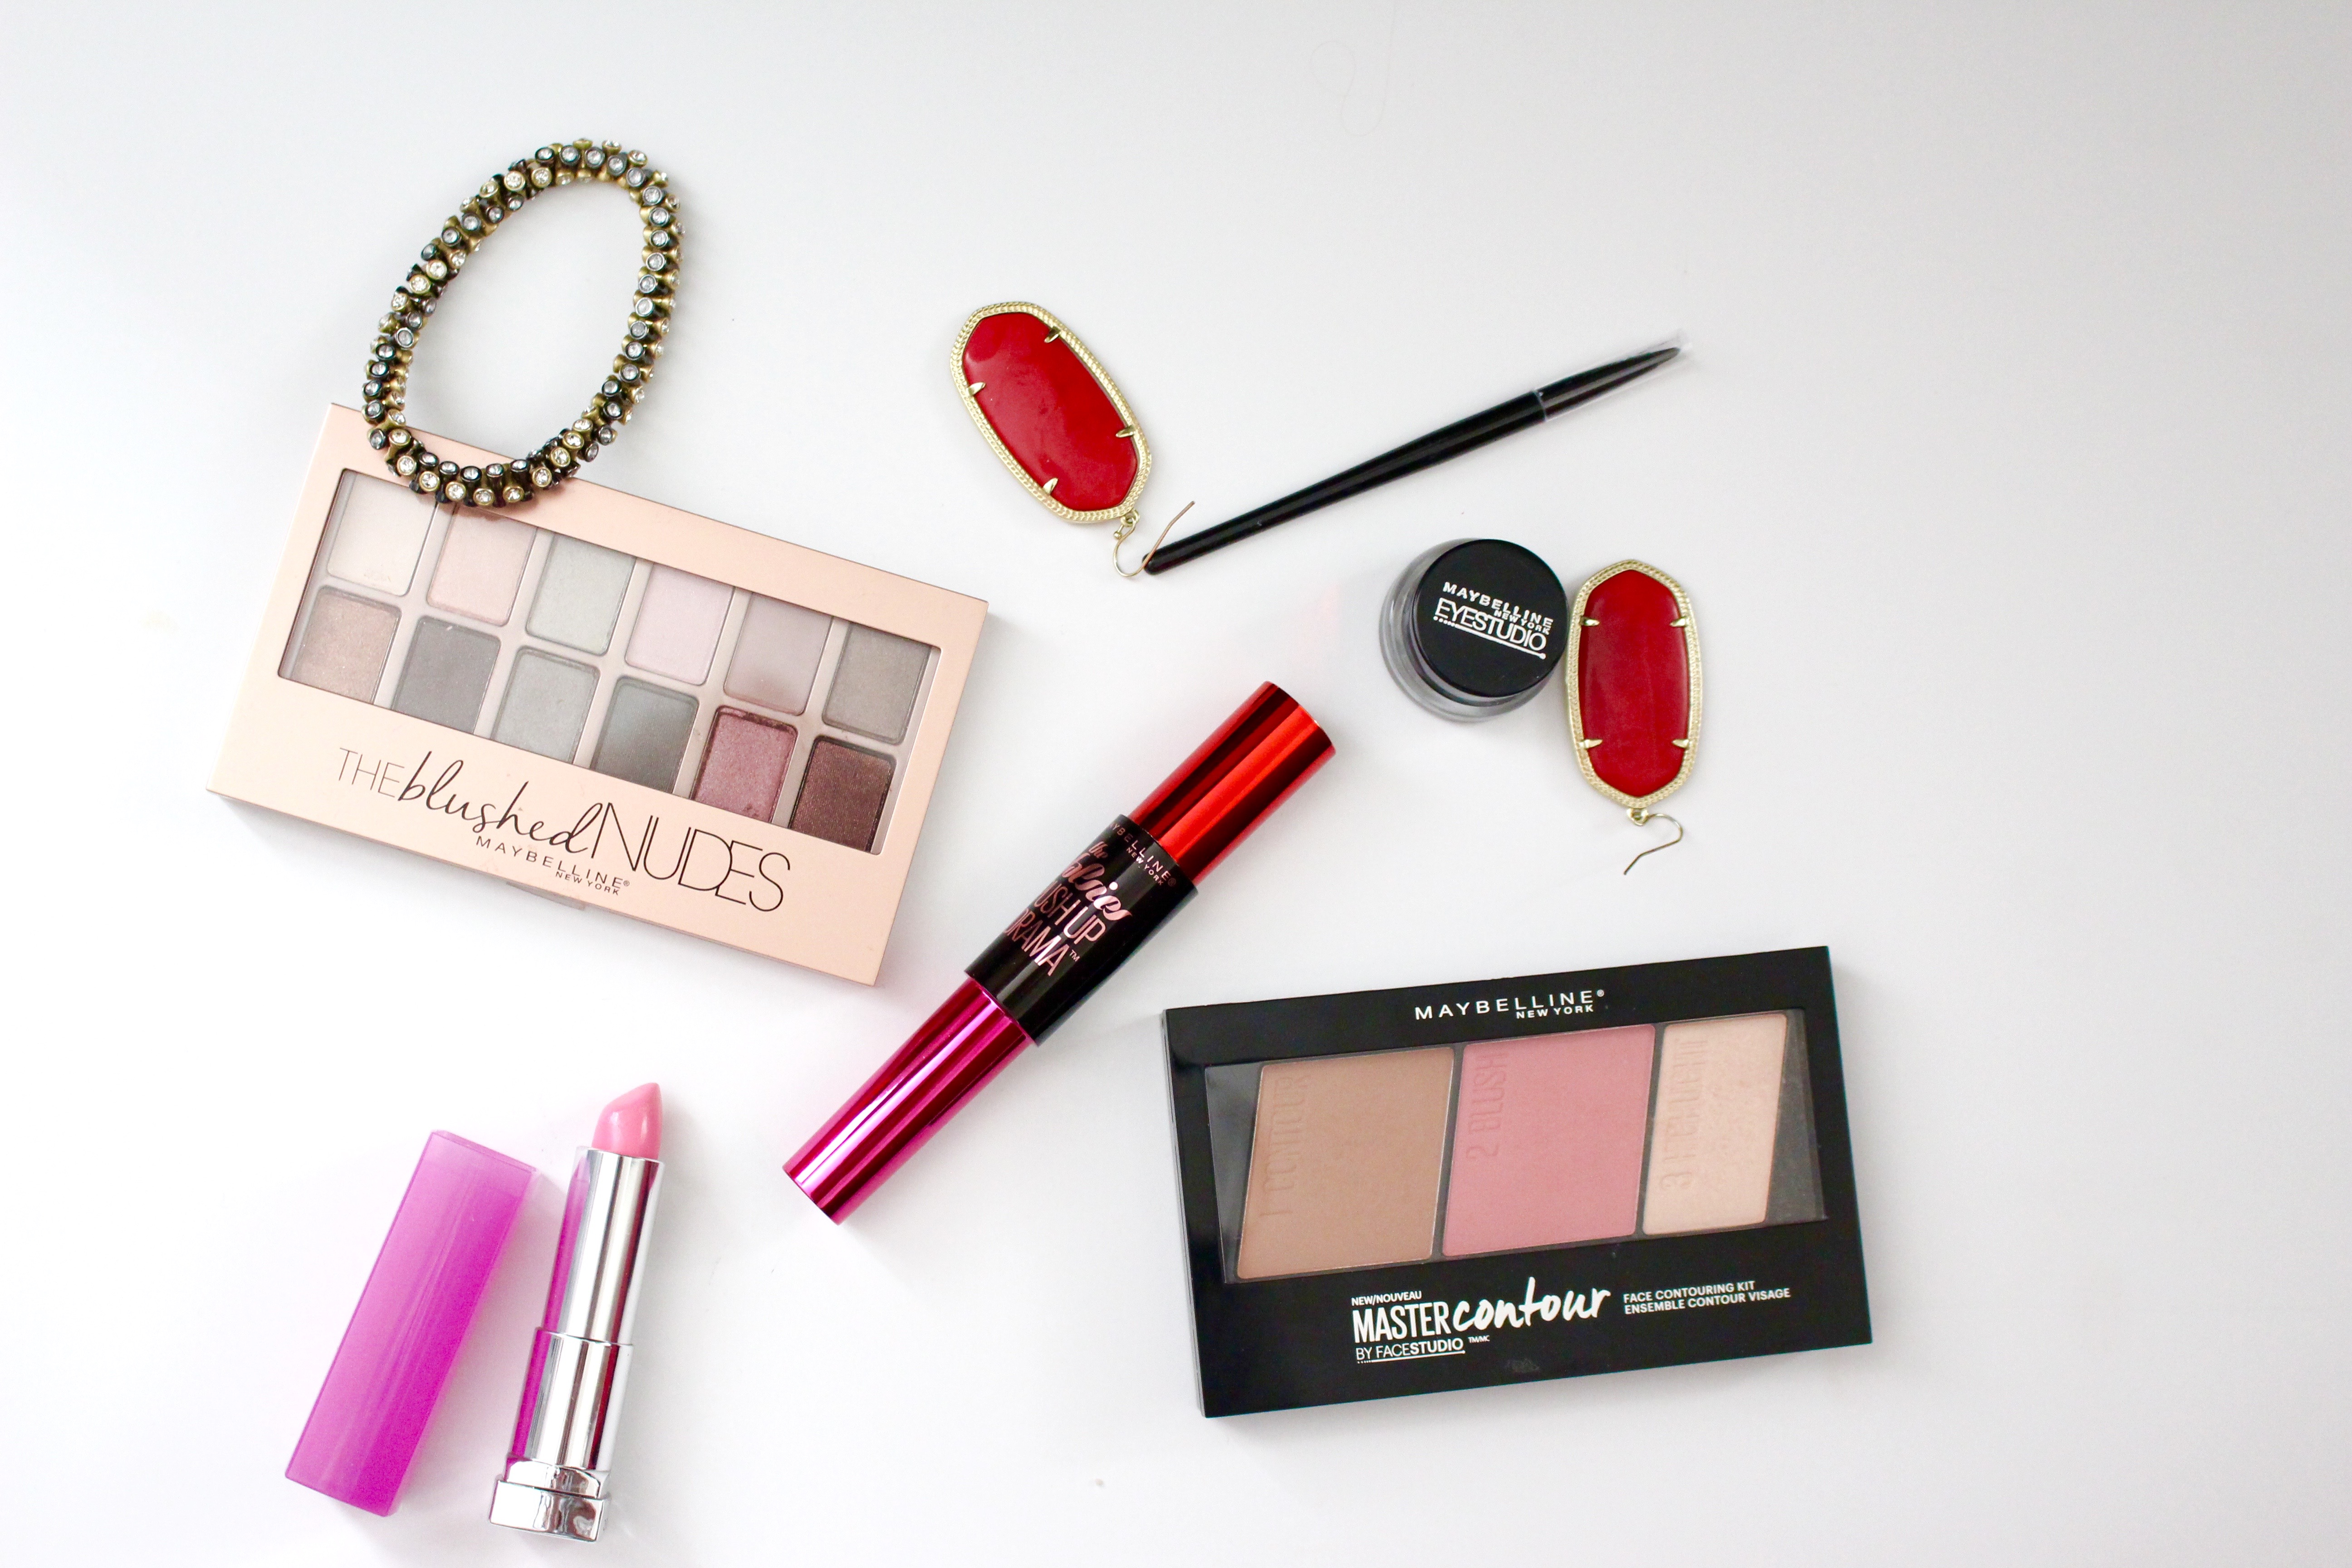 maybelline makeup looks to love